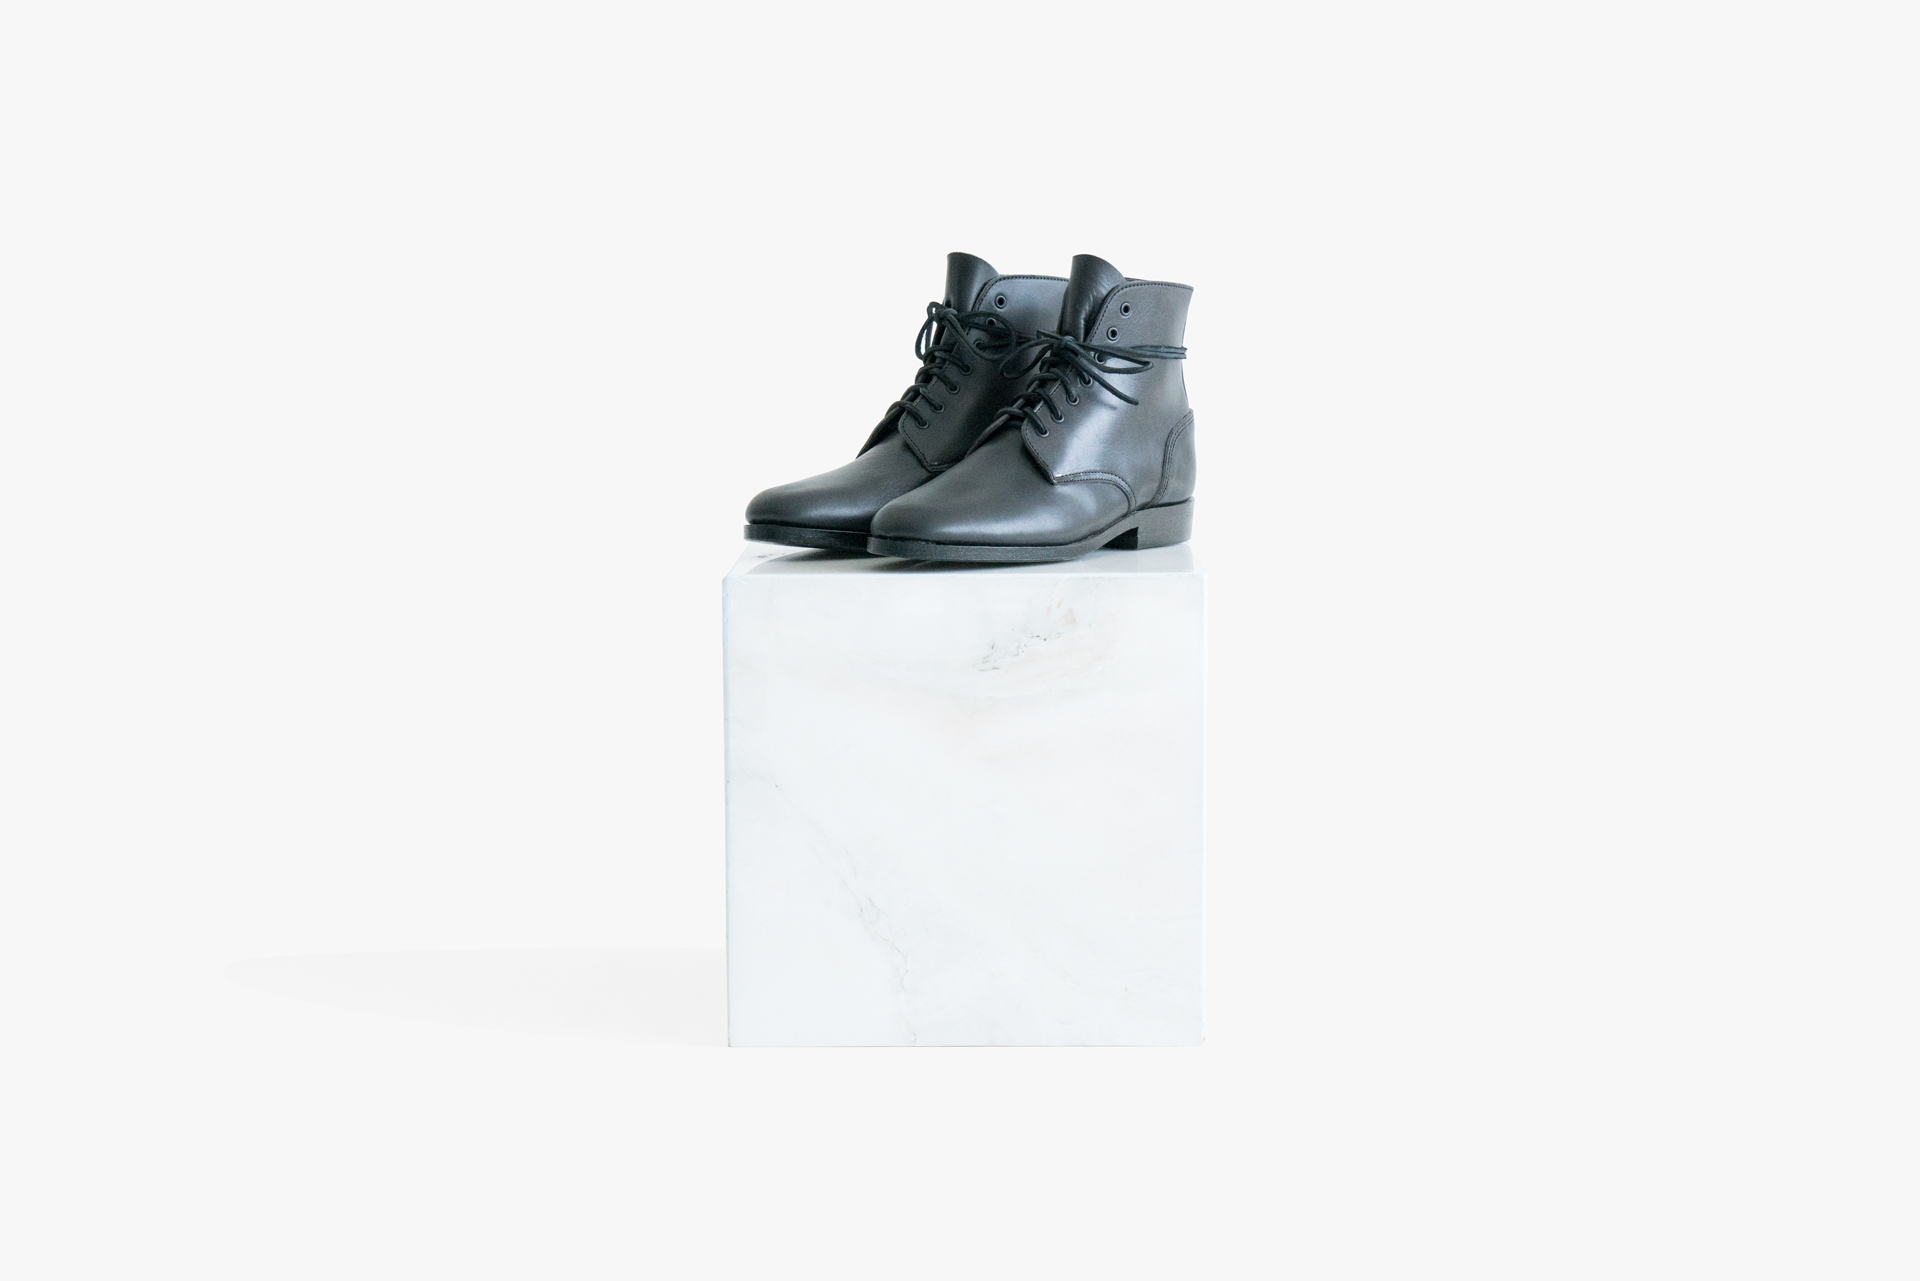 black-on-black, quality, tempesti, italian, leather, premium, natural